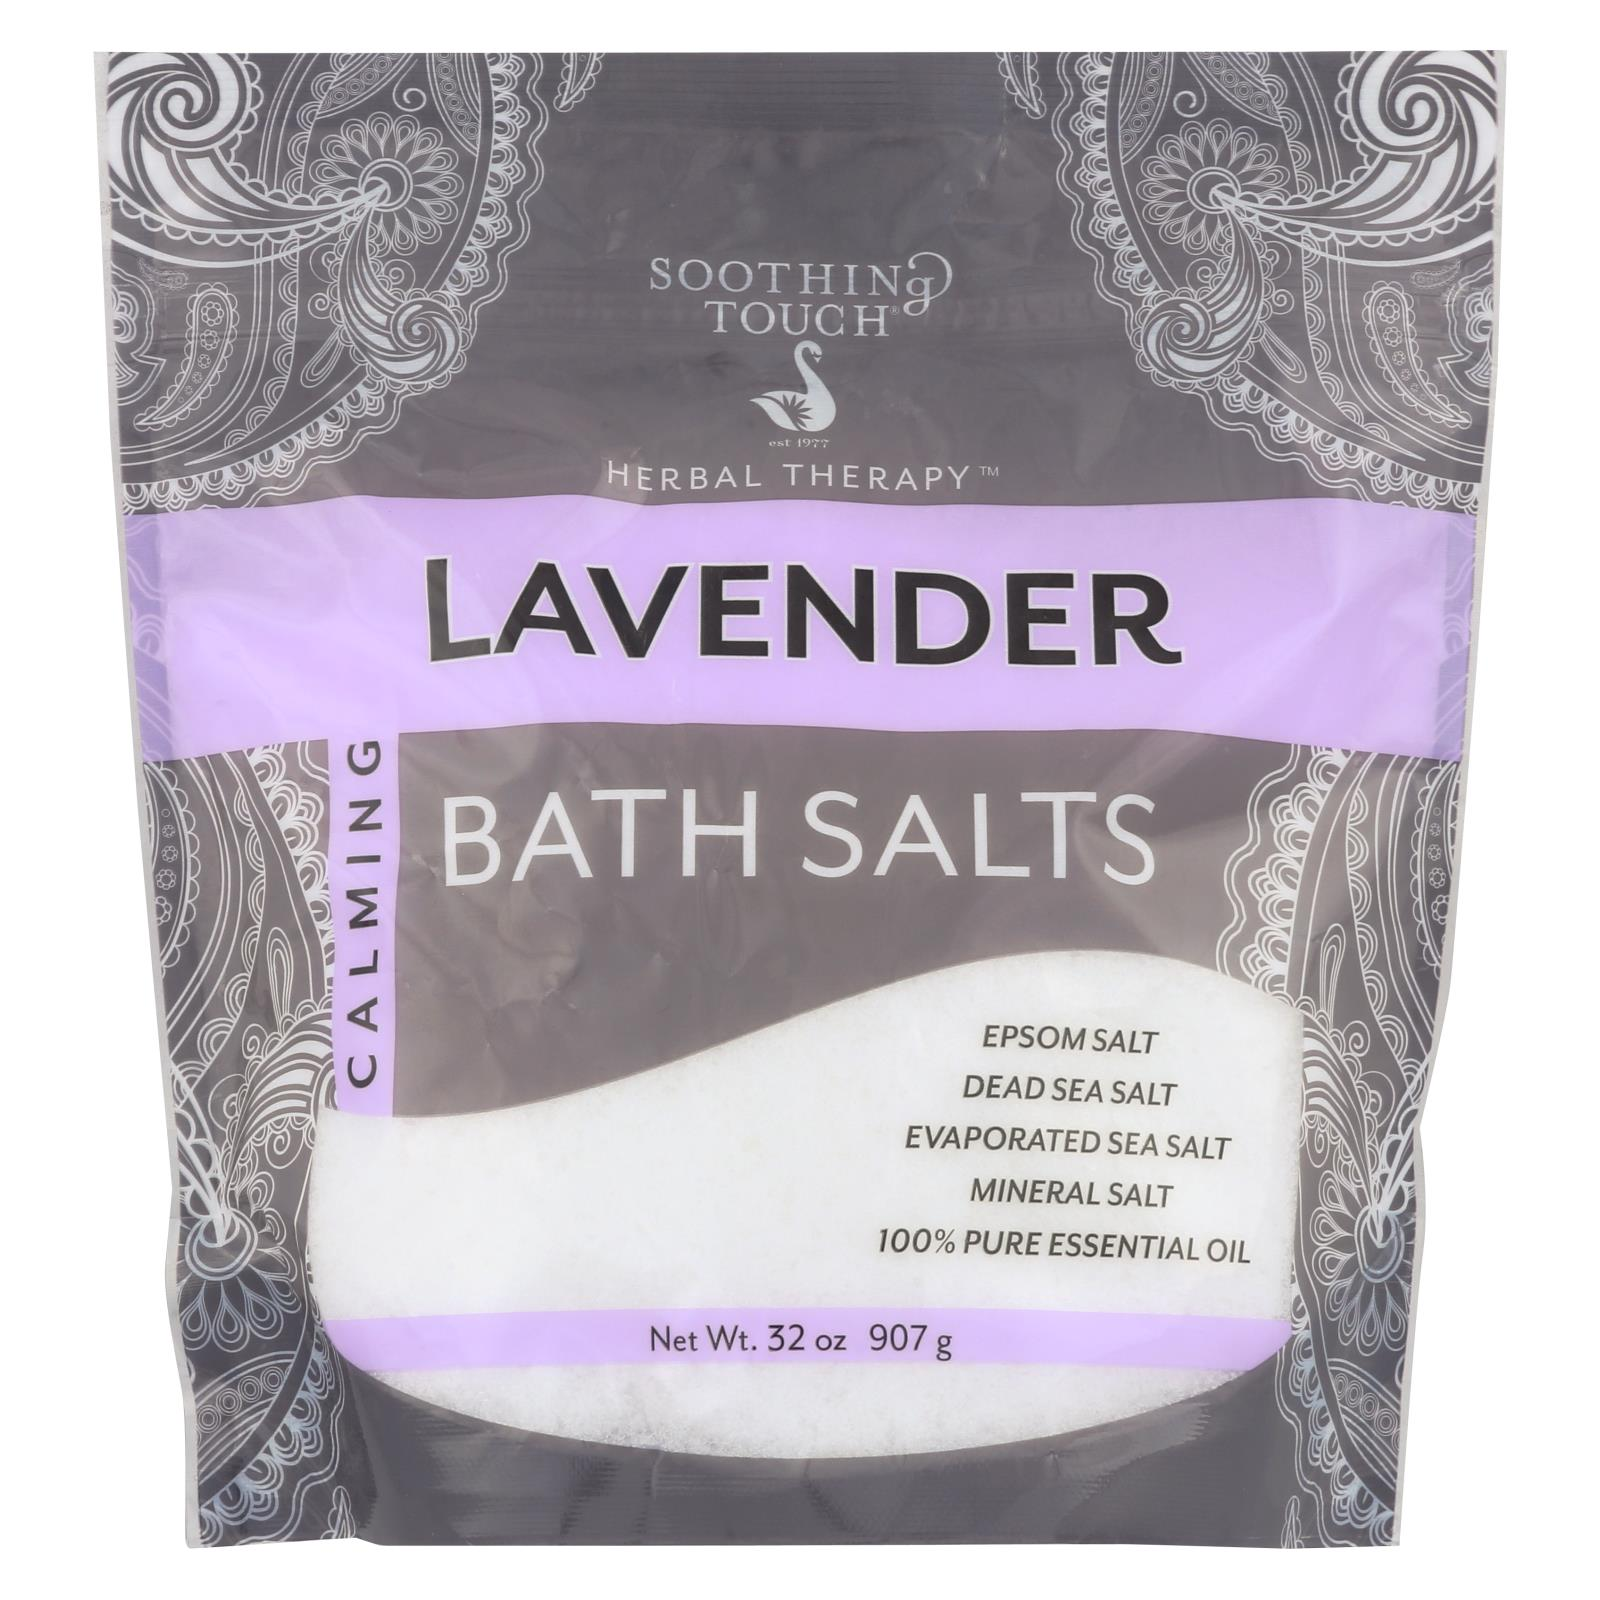 Buy Soothing Touch Bath Salts - Lavender Calming - 32 oz - Bubble Bath and Soaks from Veroeco.com